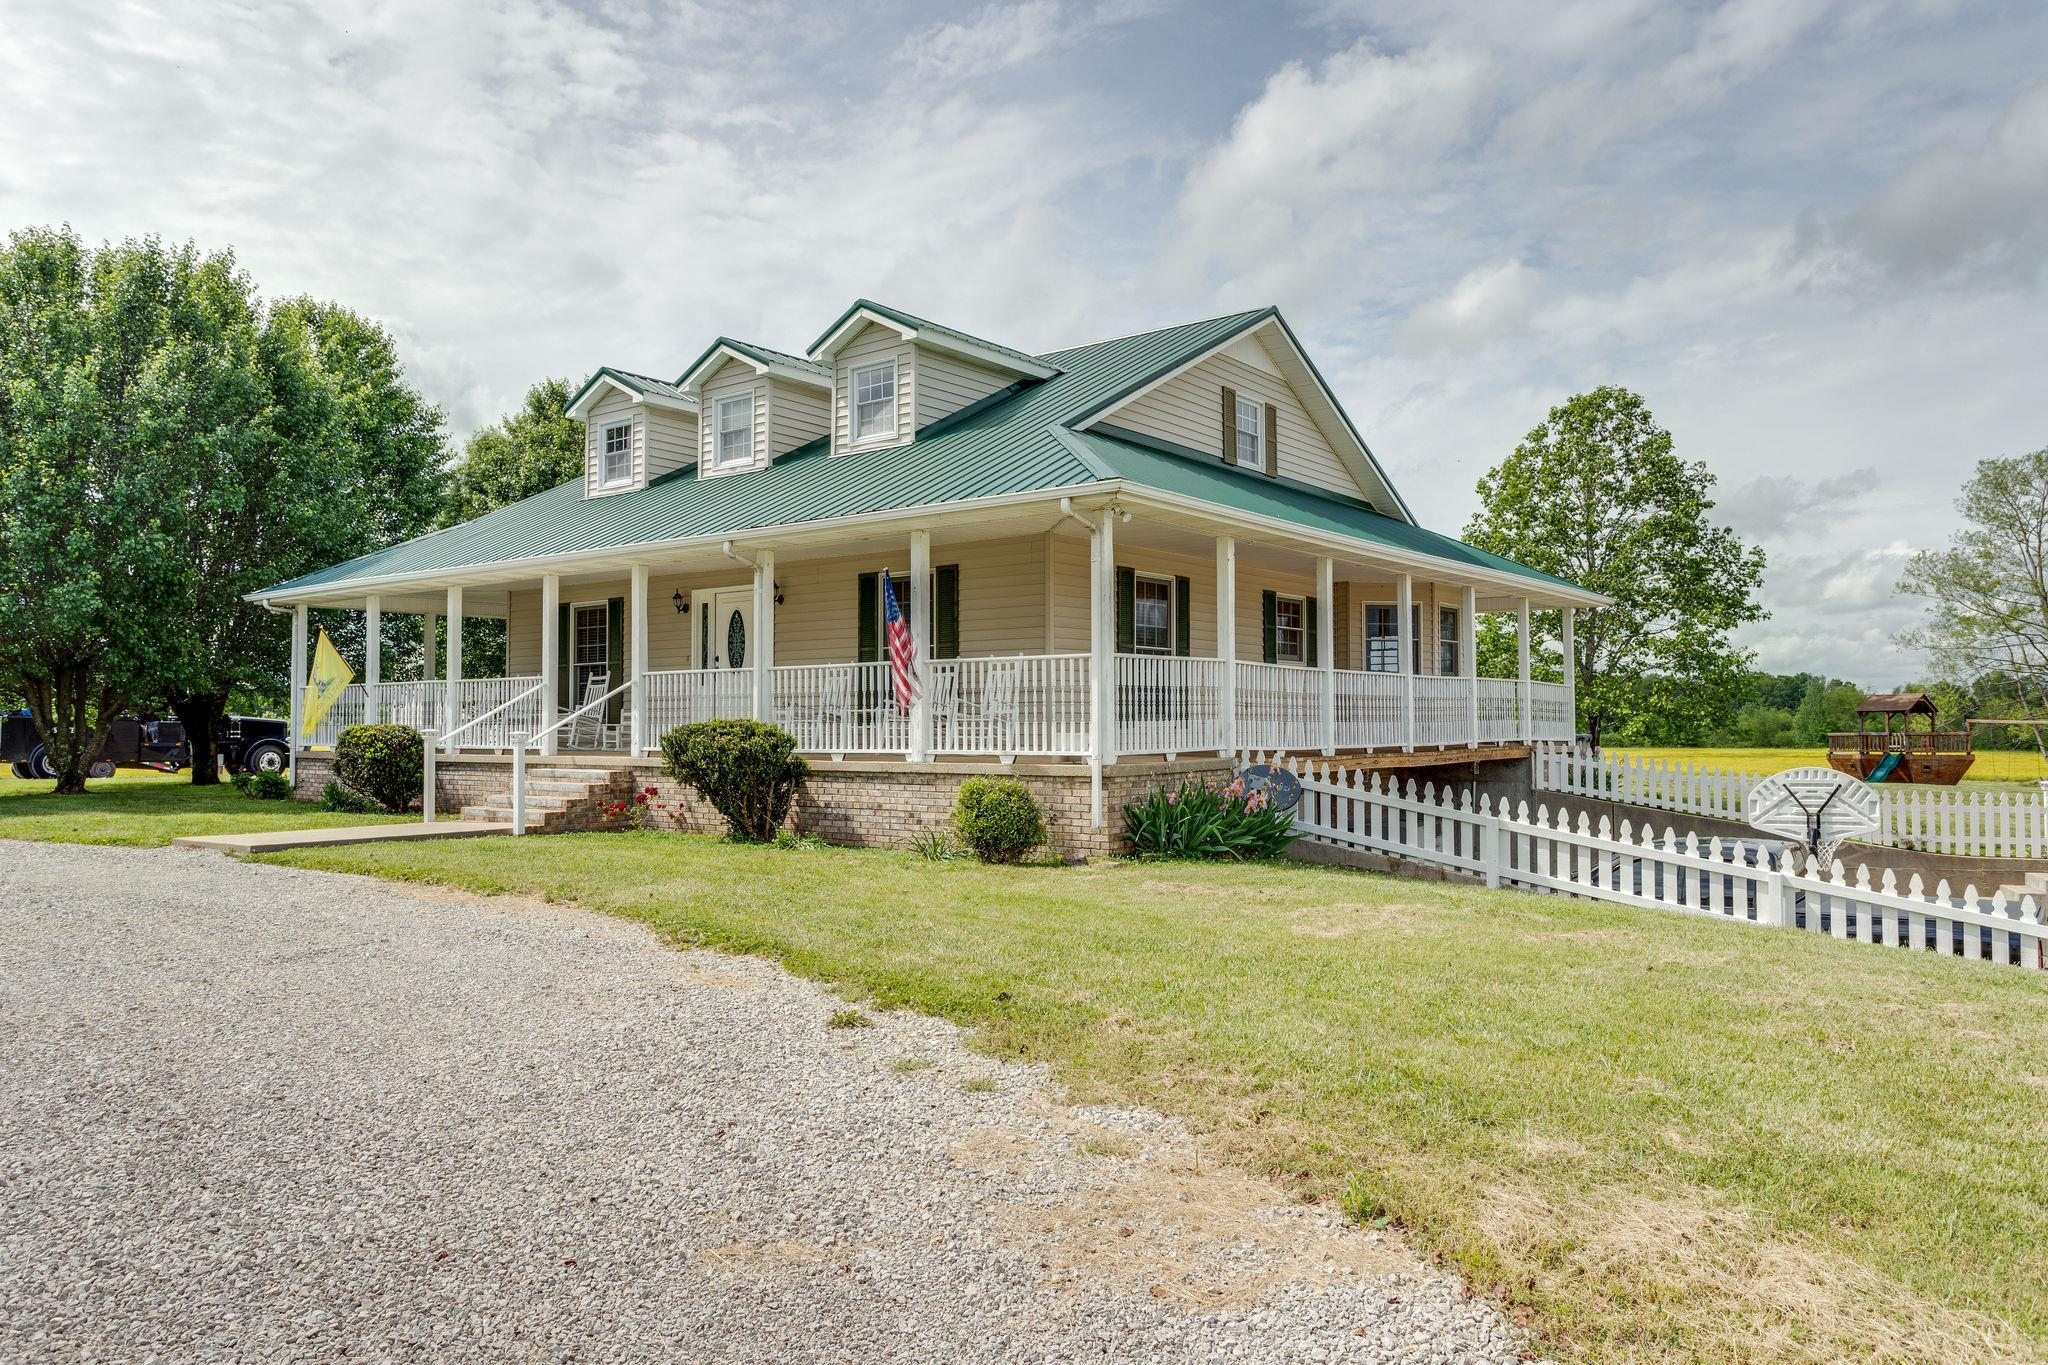 441 Colonial Rd, Hohenwald, TN 38462 - Hohenwald, TN real estate listing